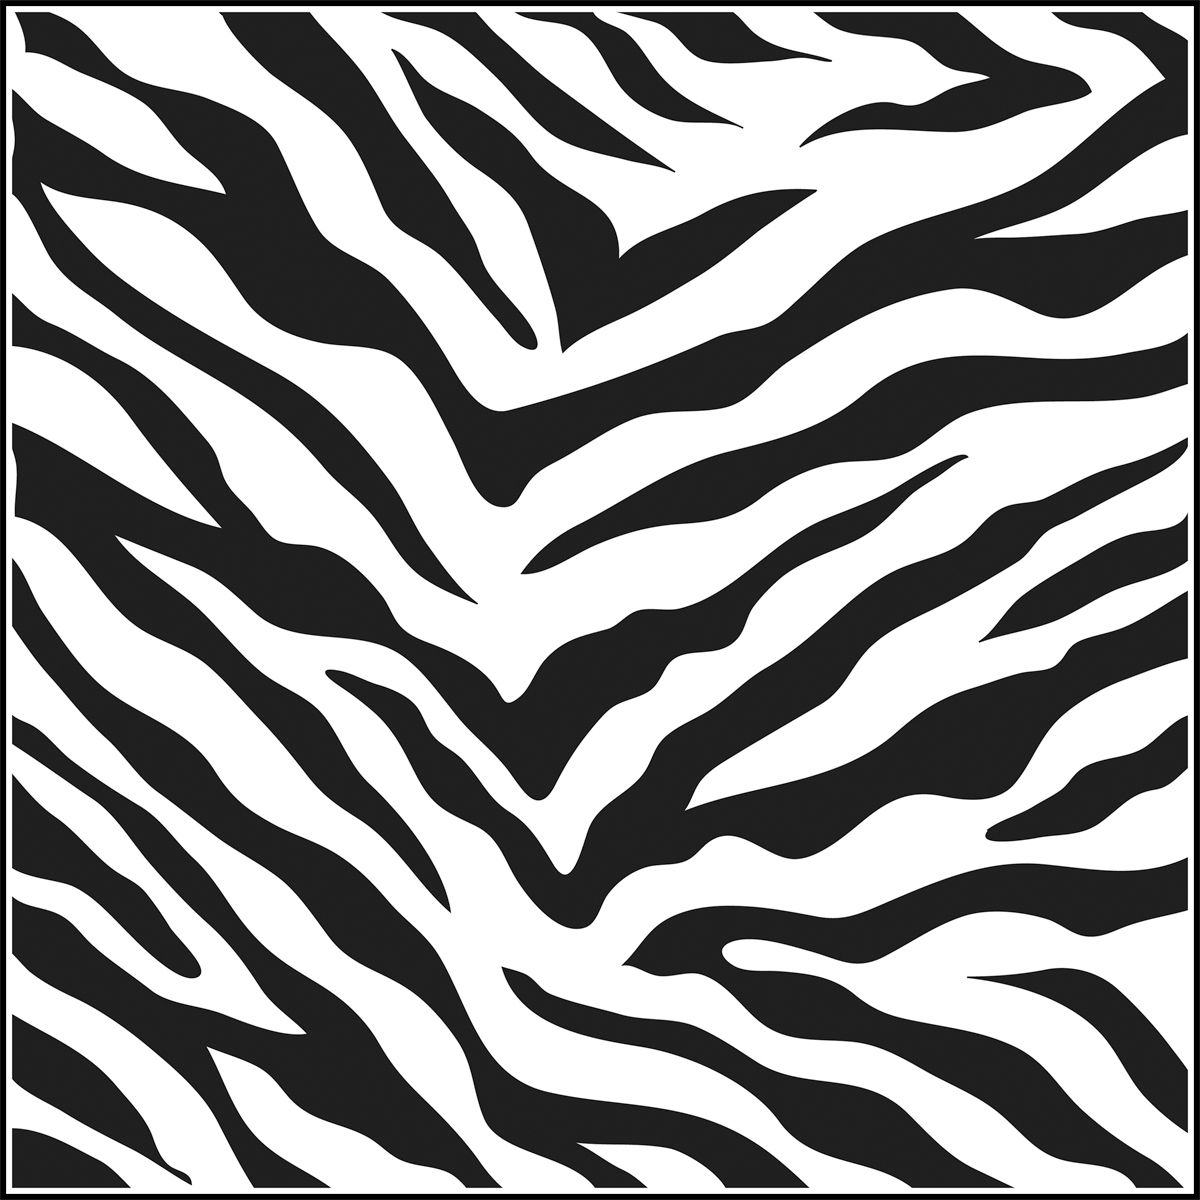 For Invitations I Took A Picture Of Zebra Print Then